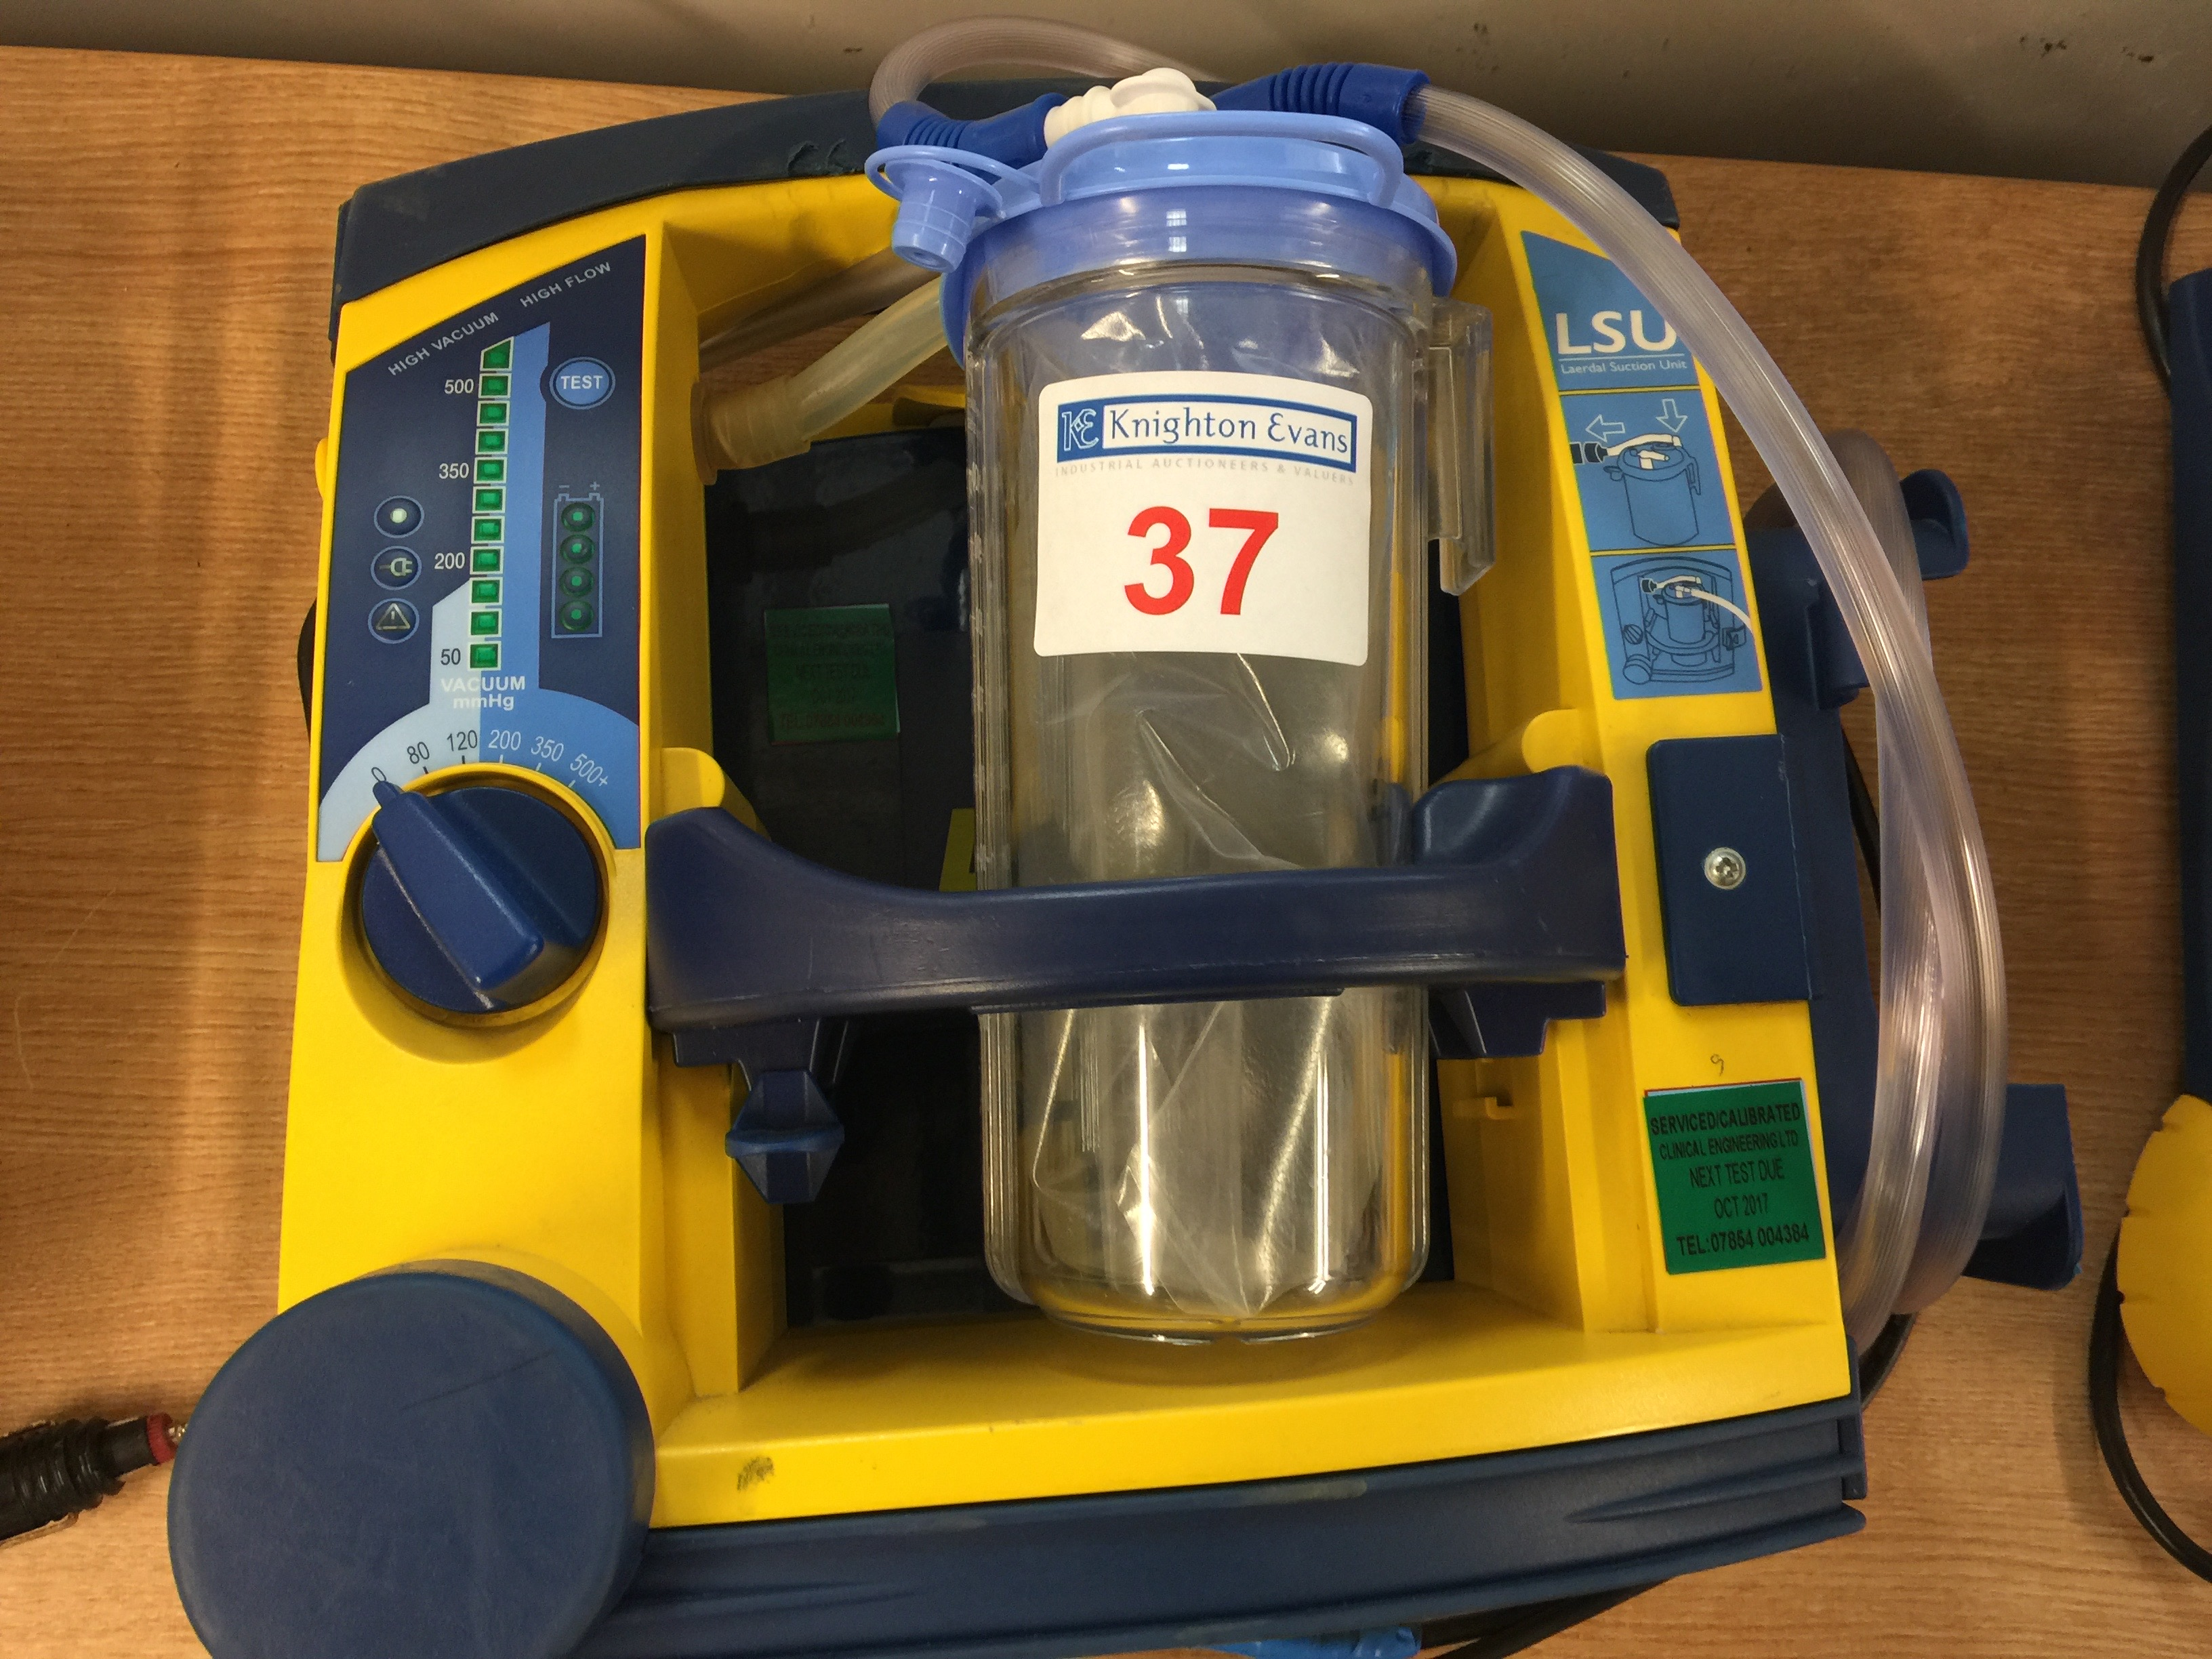 Lot 37 - Laerdal LSU portable suction unit with mounting plate and 12v charger, test due October 2017